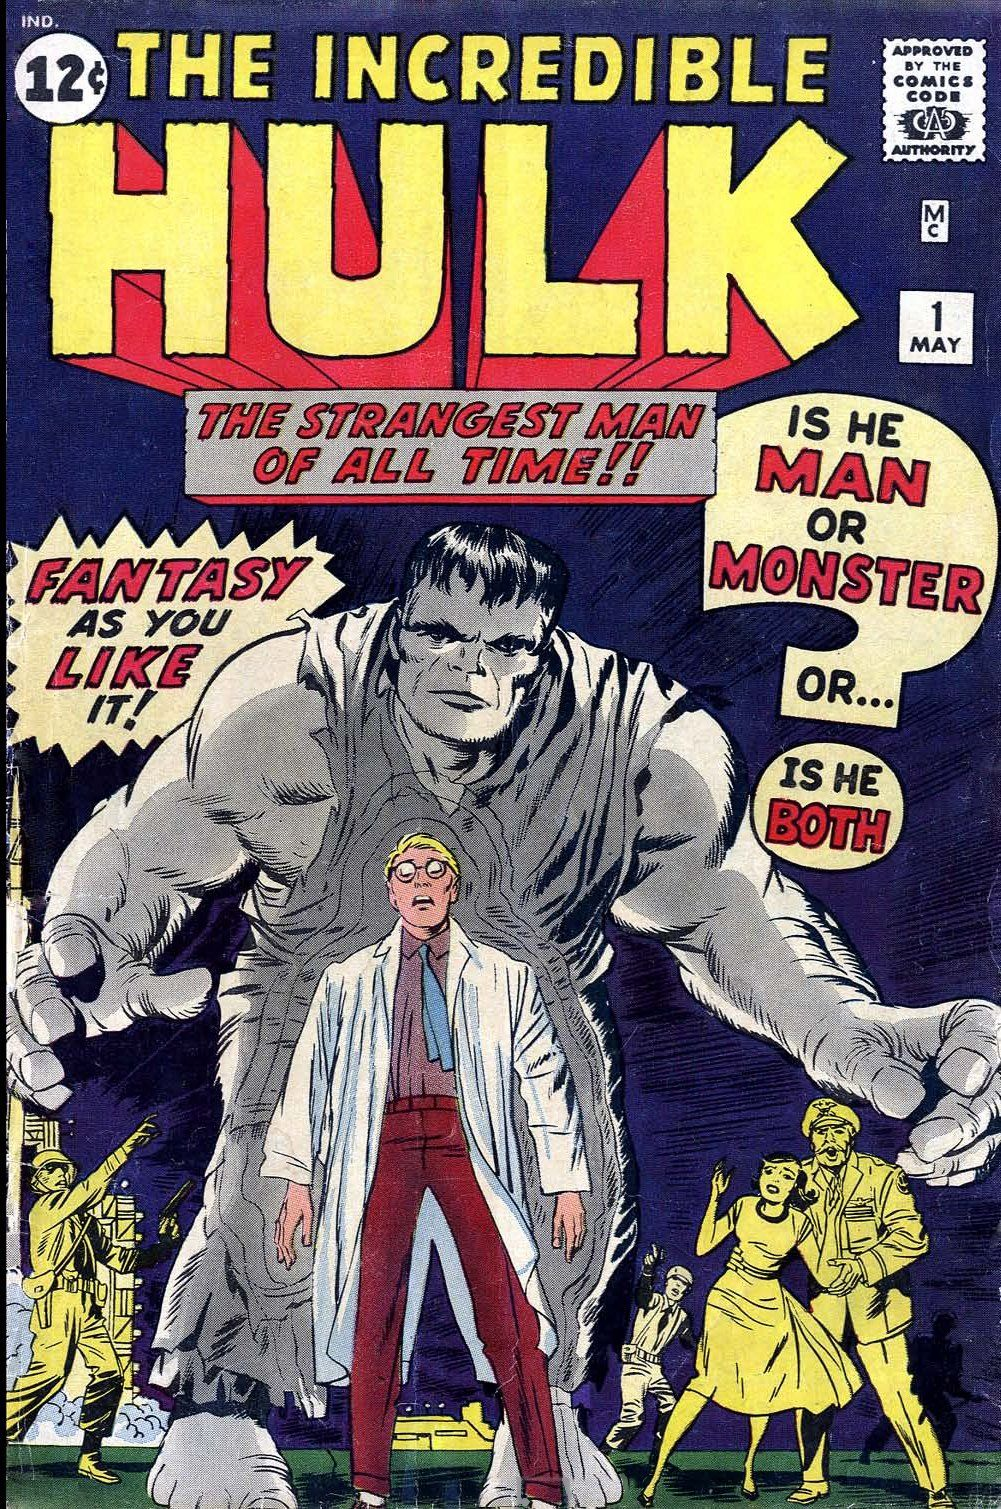 Marvel's THE INCREDIBLE HULK #1